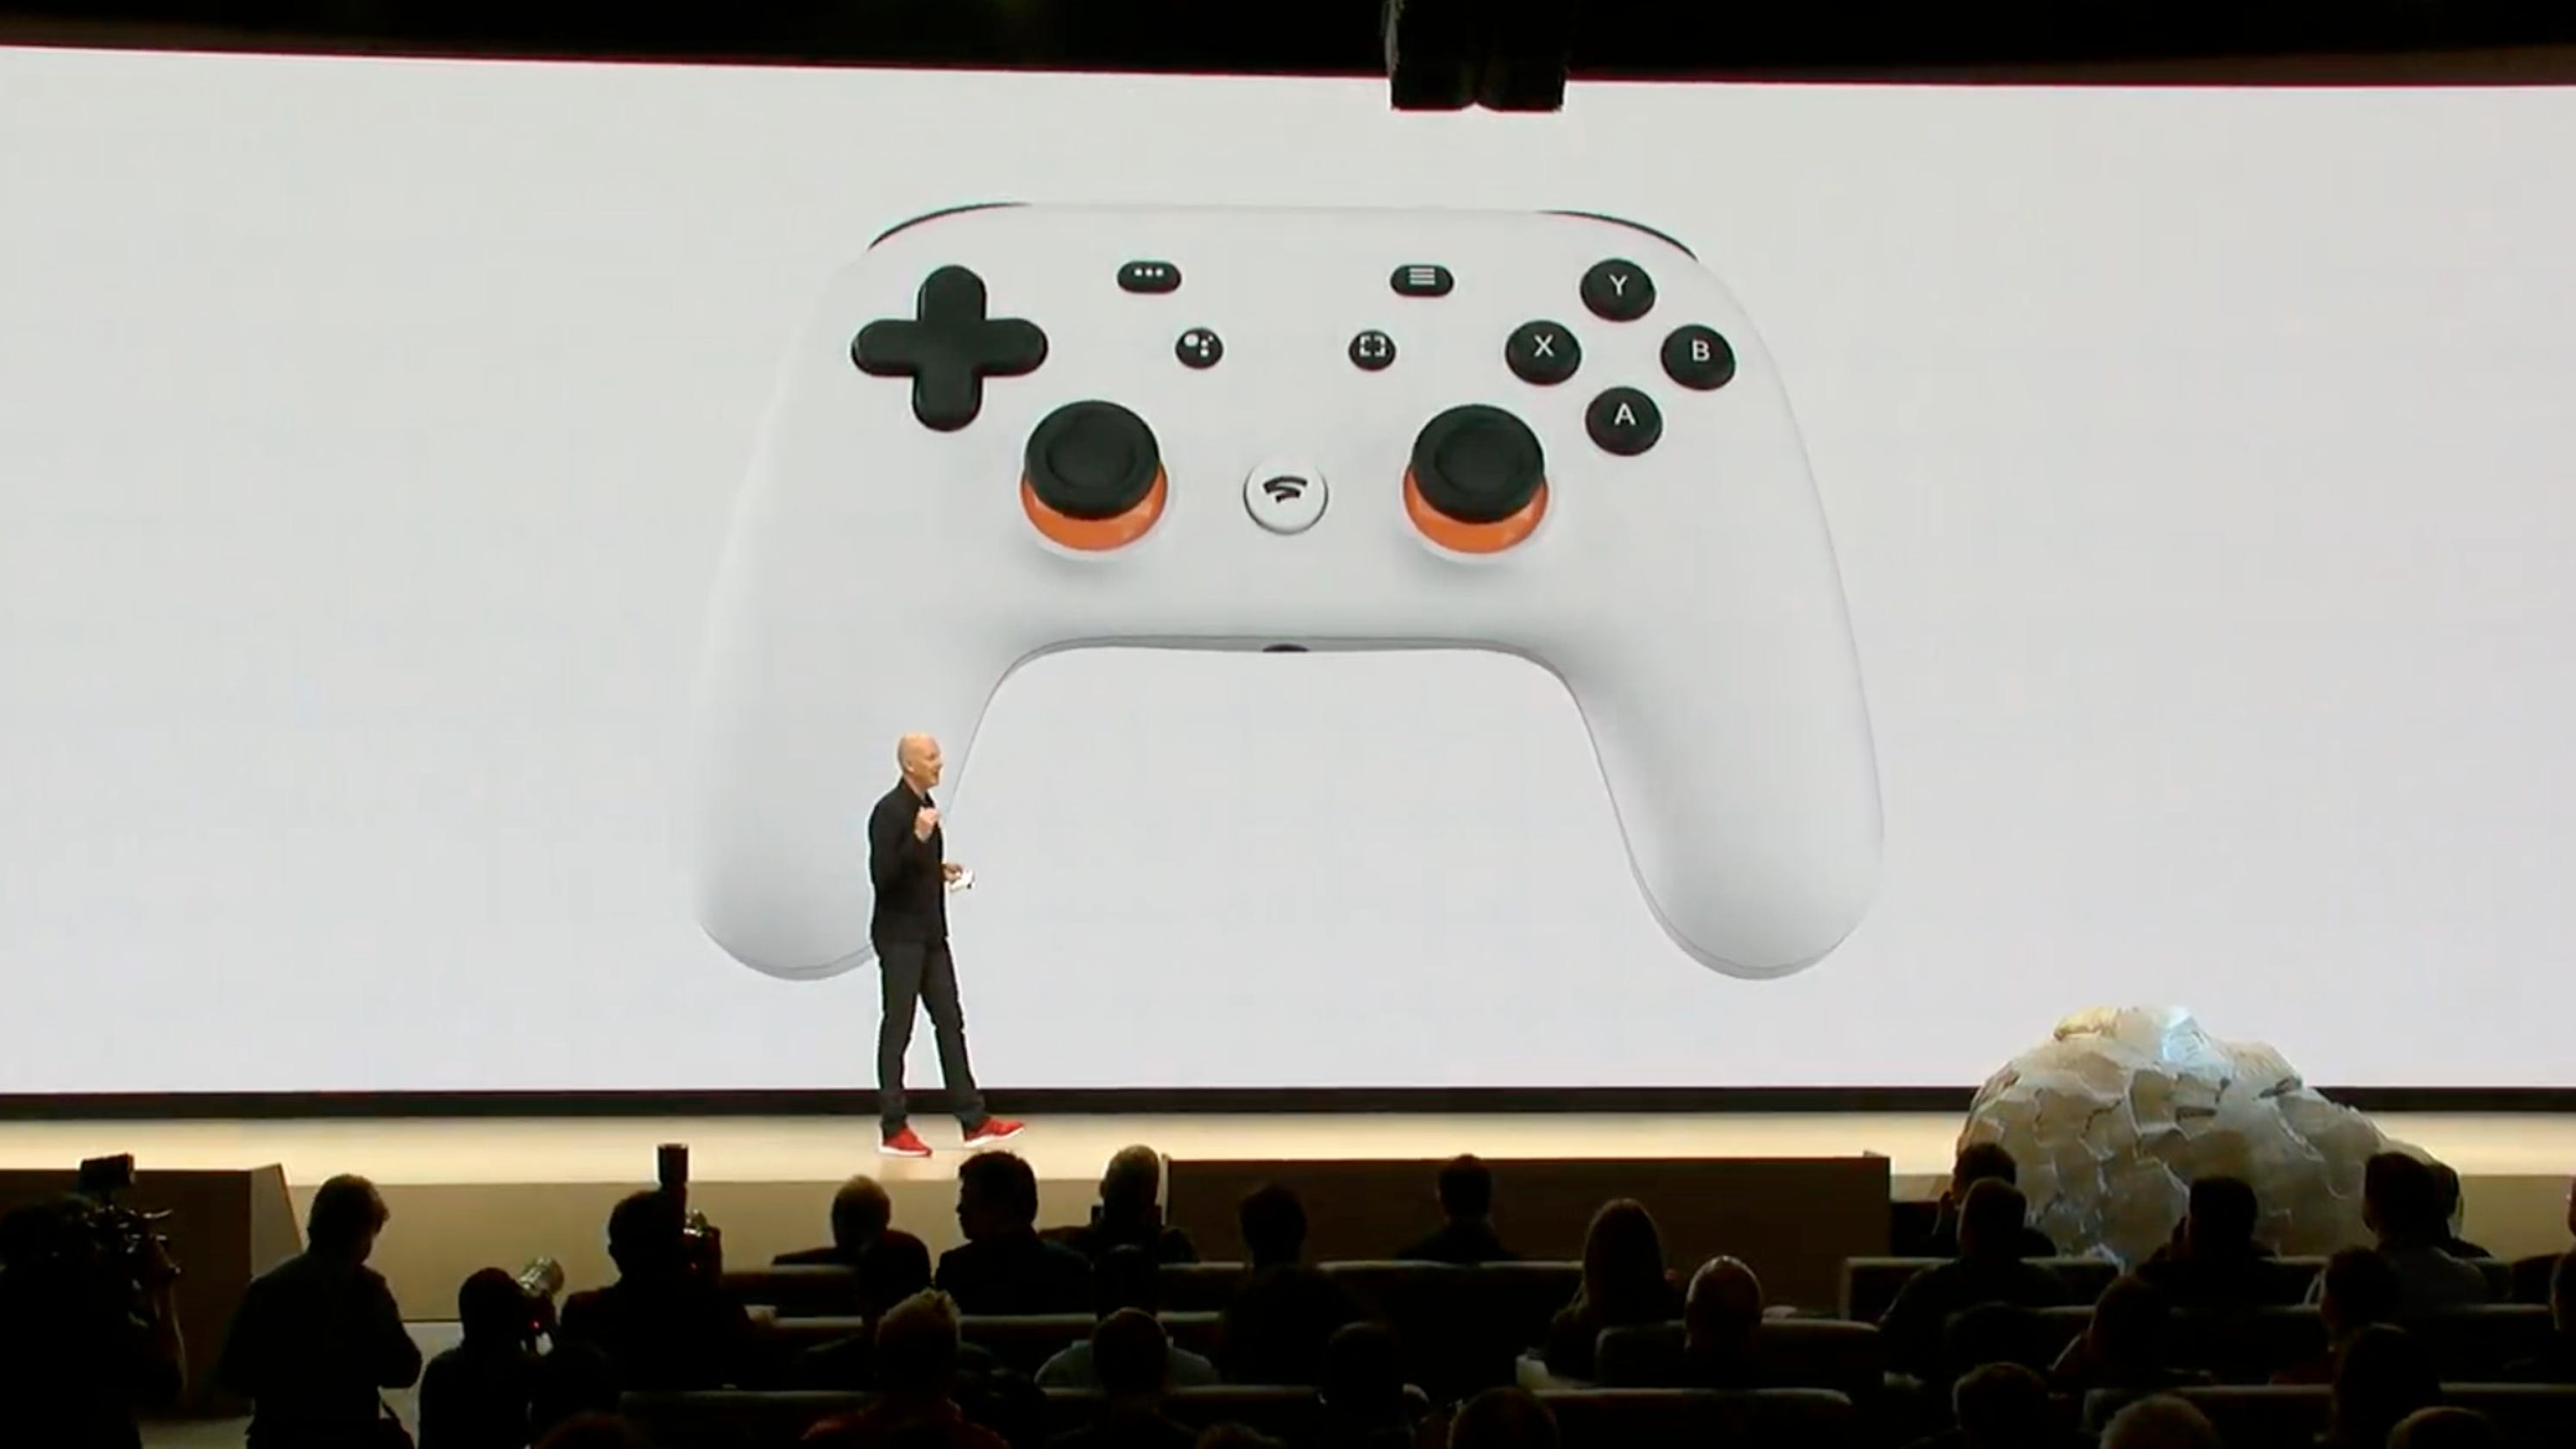 Google opens up video gaming across devices with Stadia platform